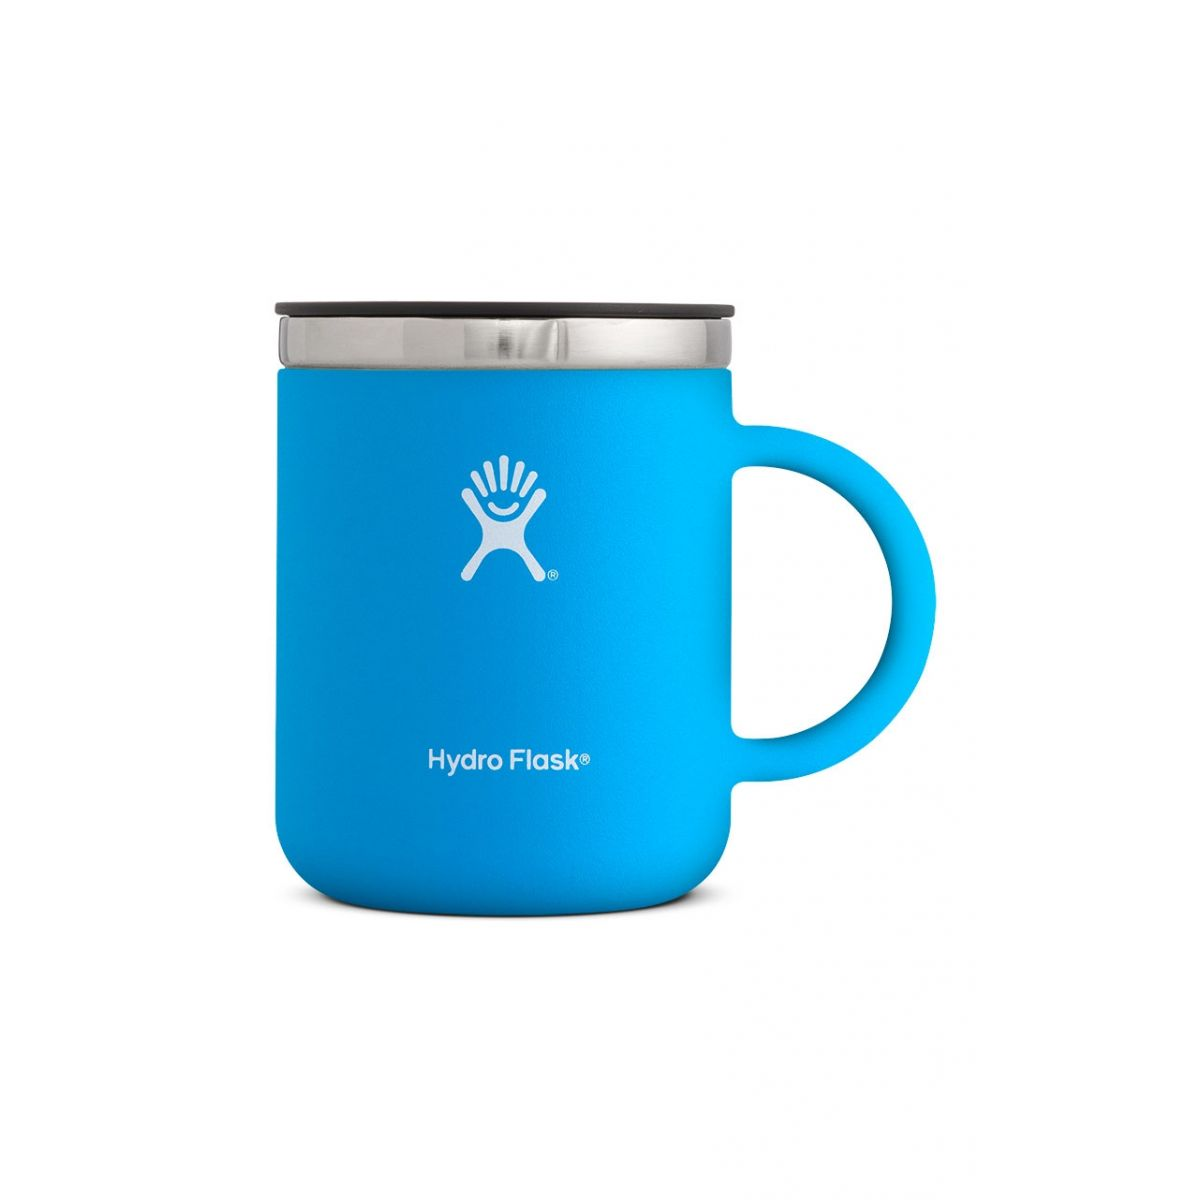 hydro flask 12 oz coffee mug in pacific